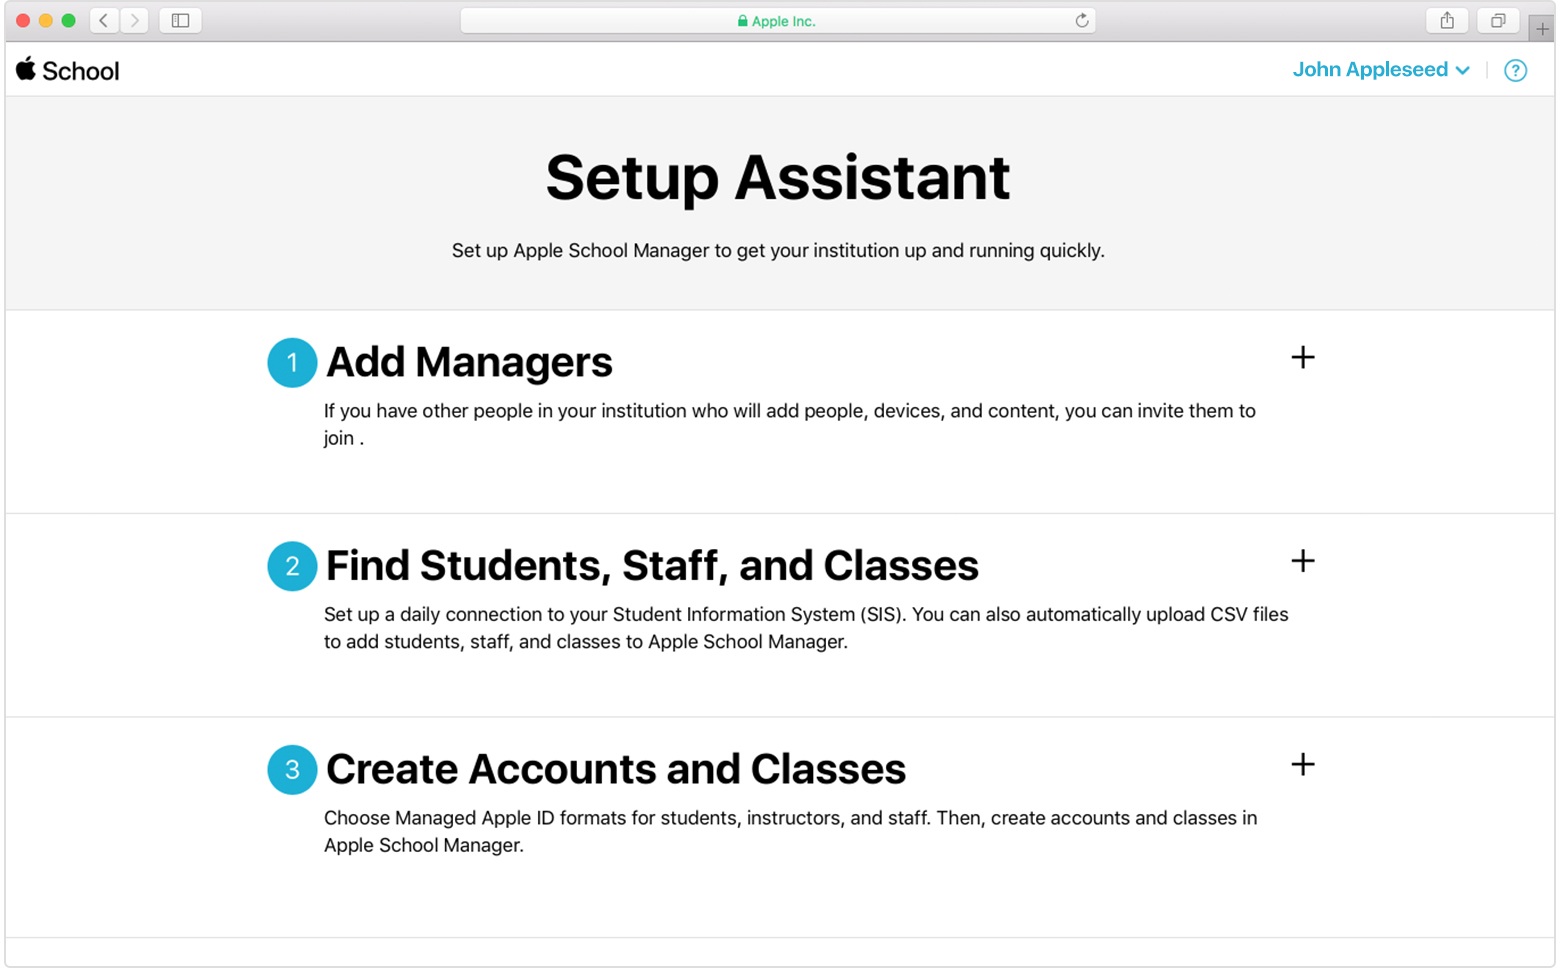 Use SFTP to upload student, staff, and class data to Apple